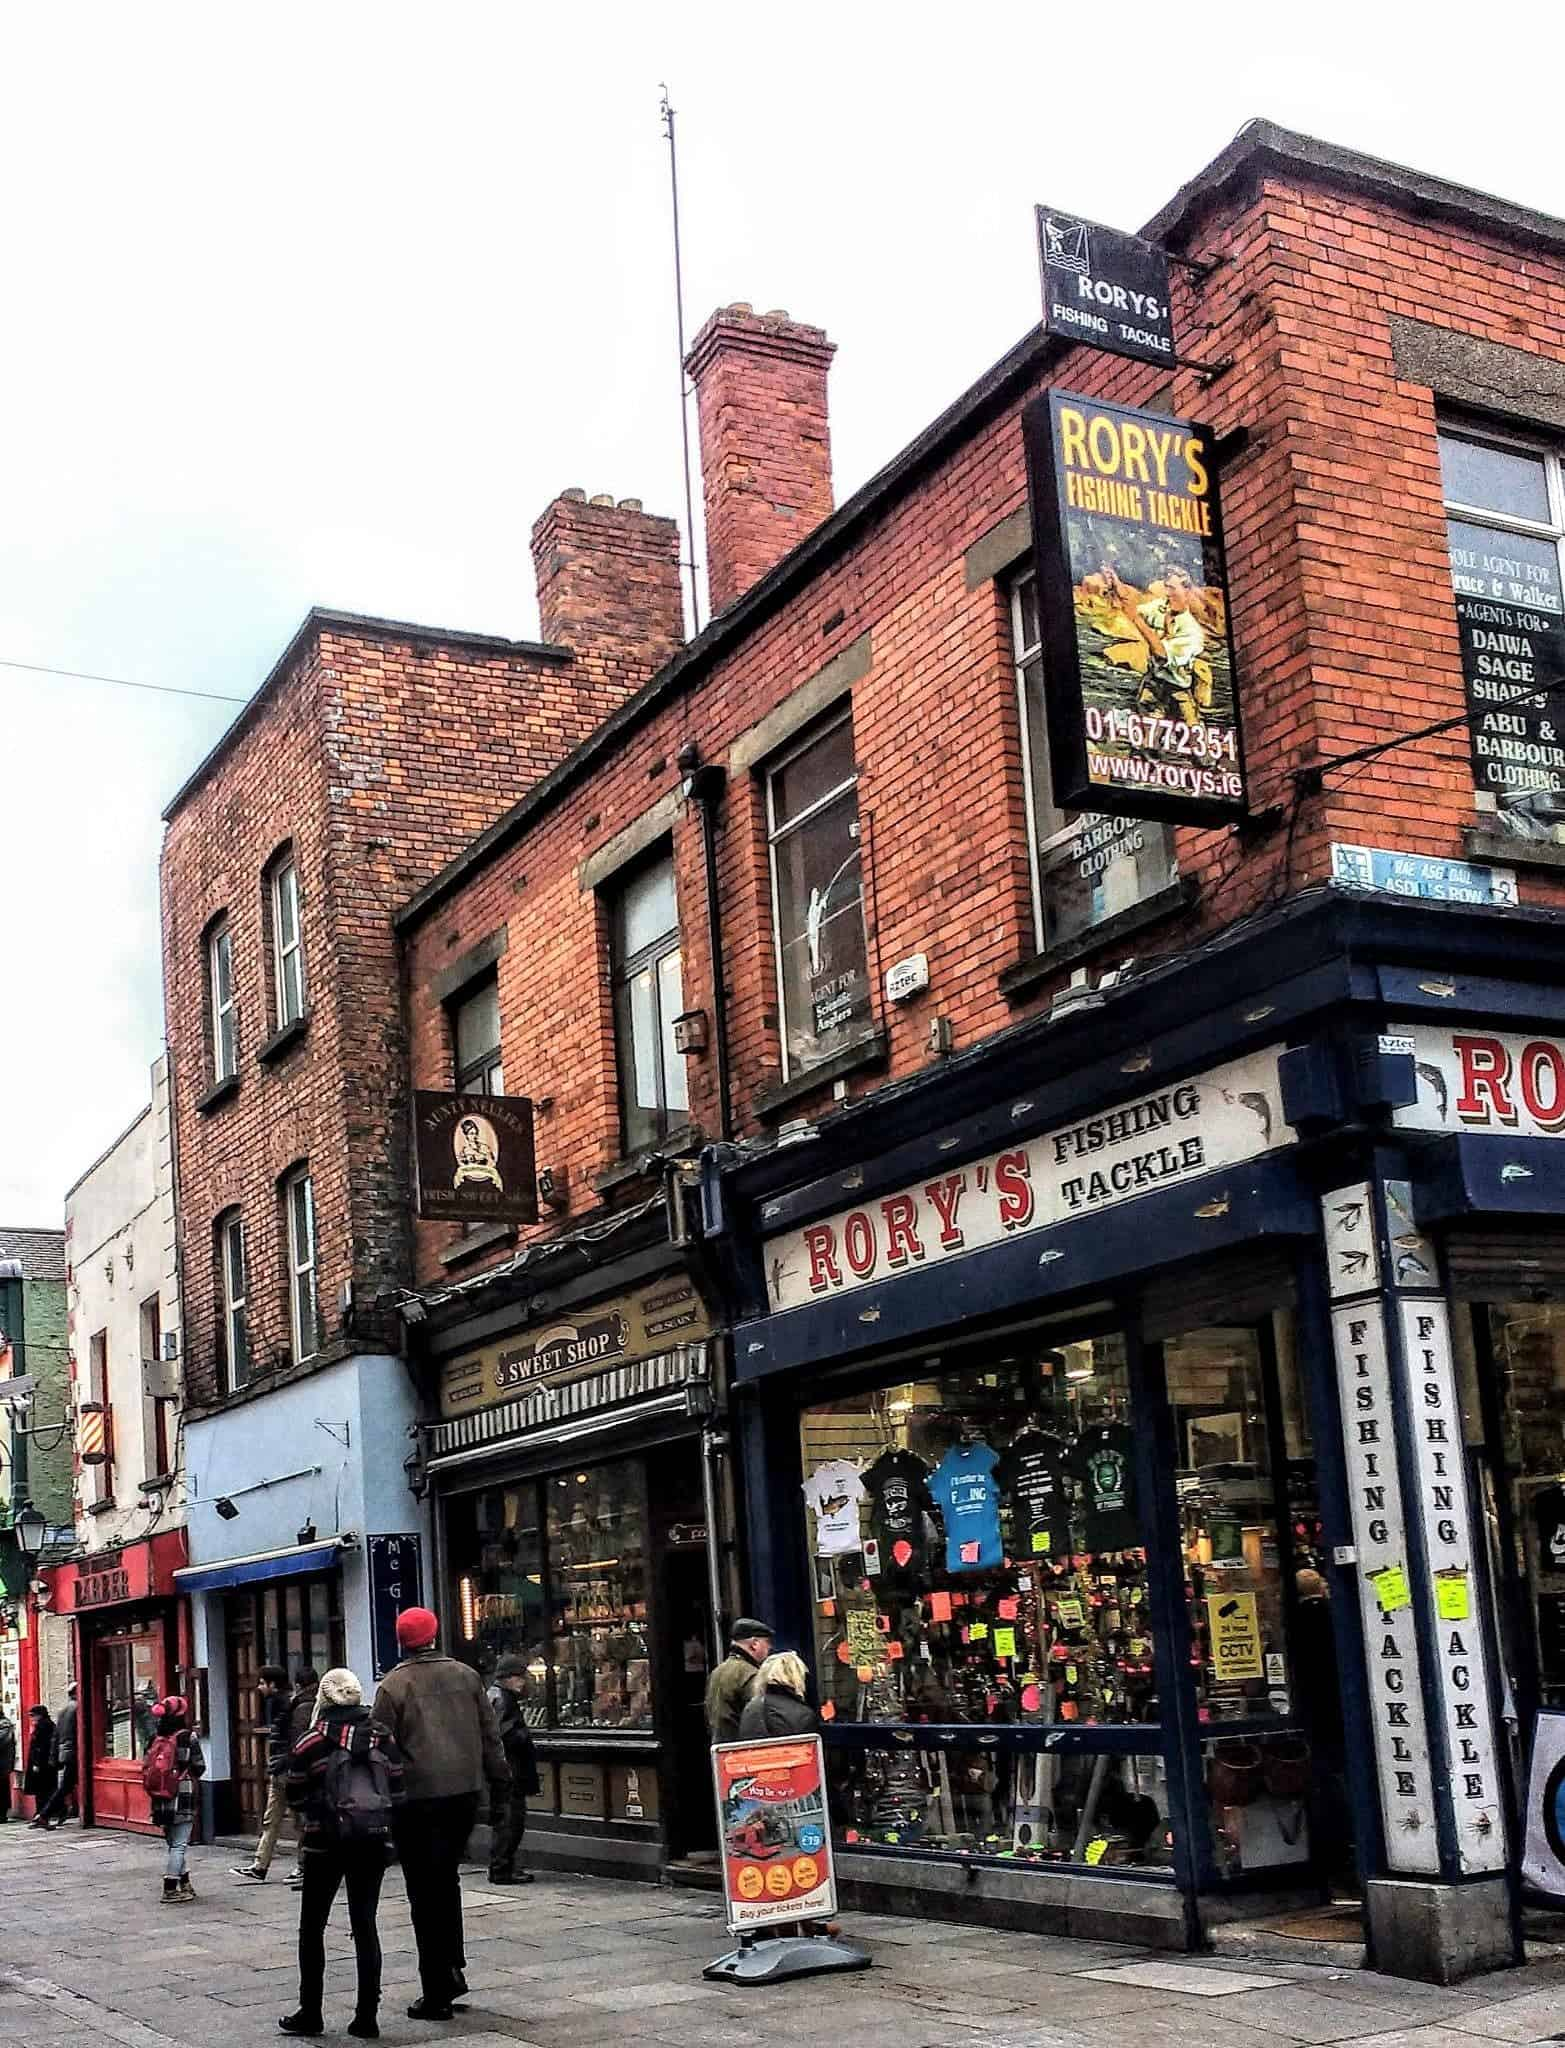 Dublin sightseeing - 15 special places to visit in Dublin